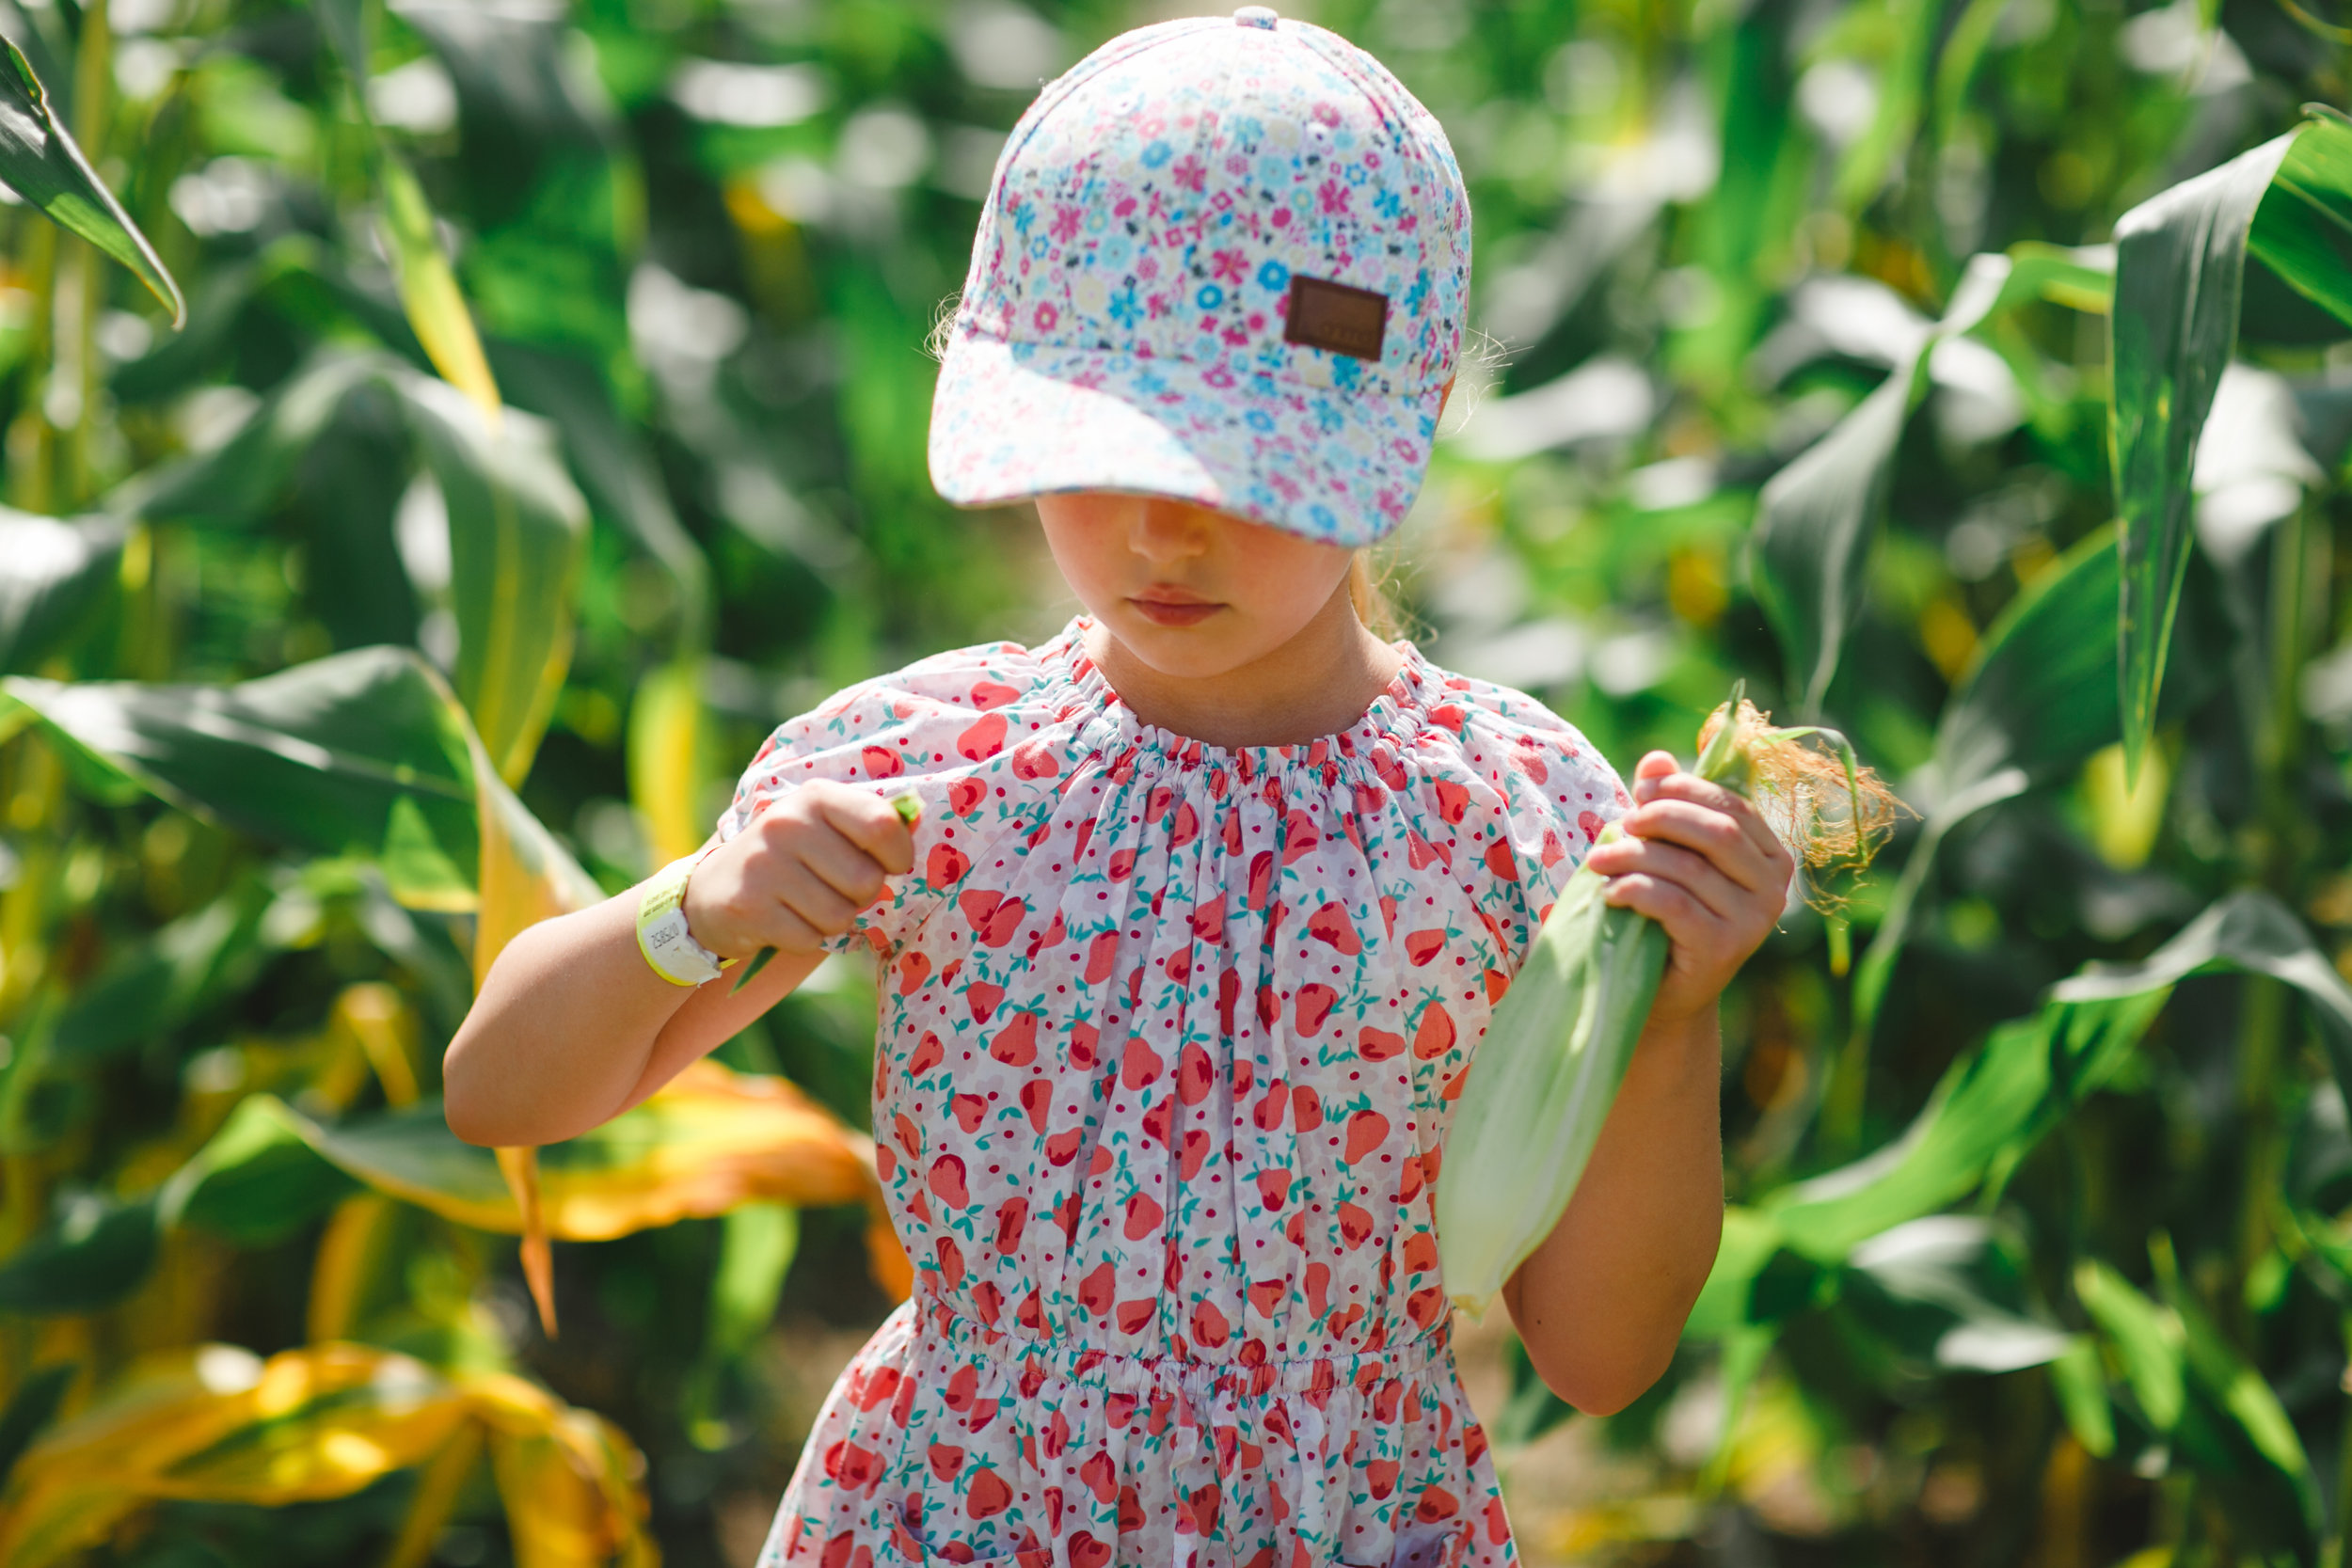 Picking Sweetcorn